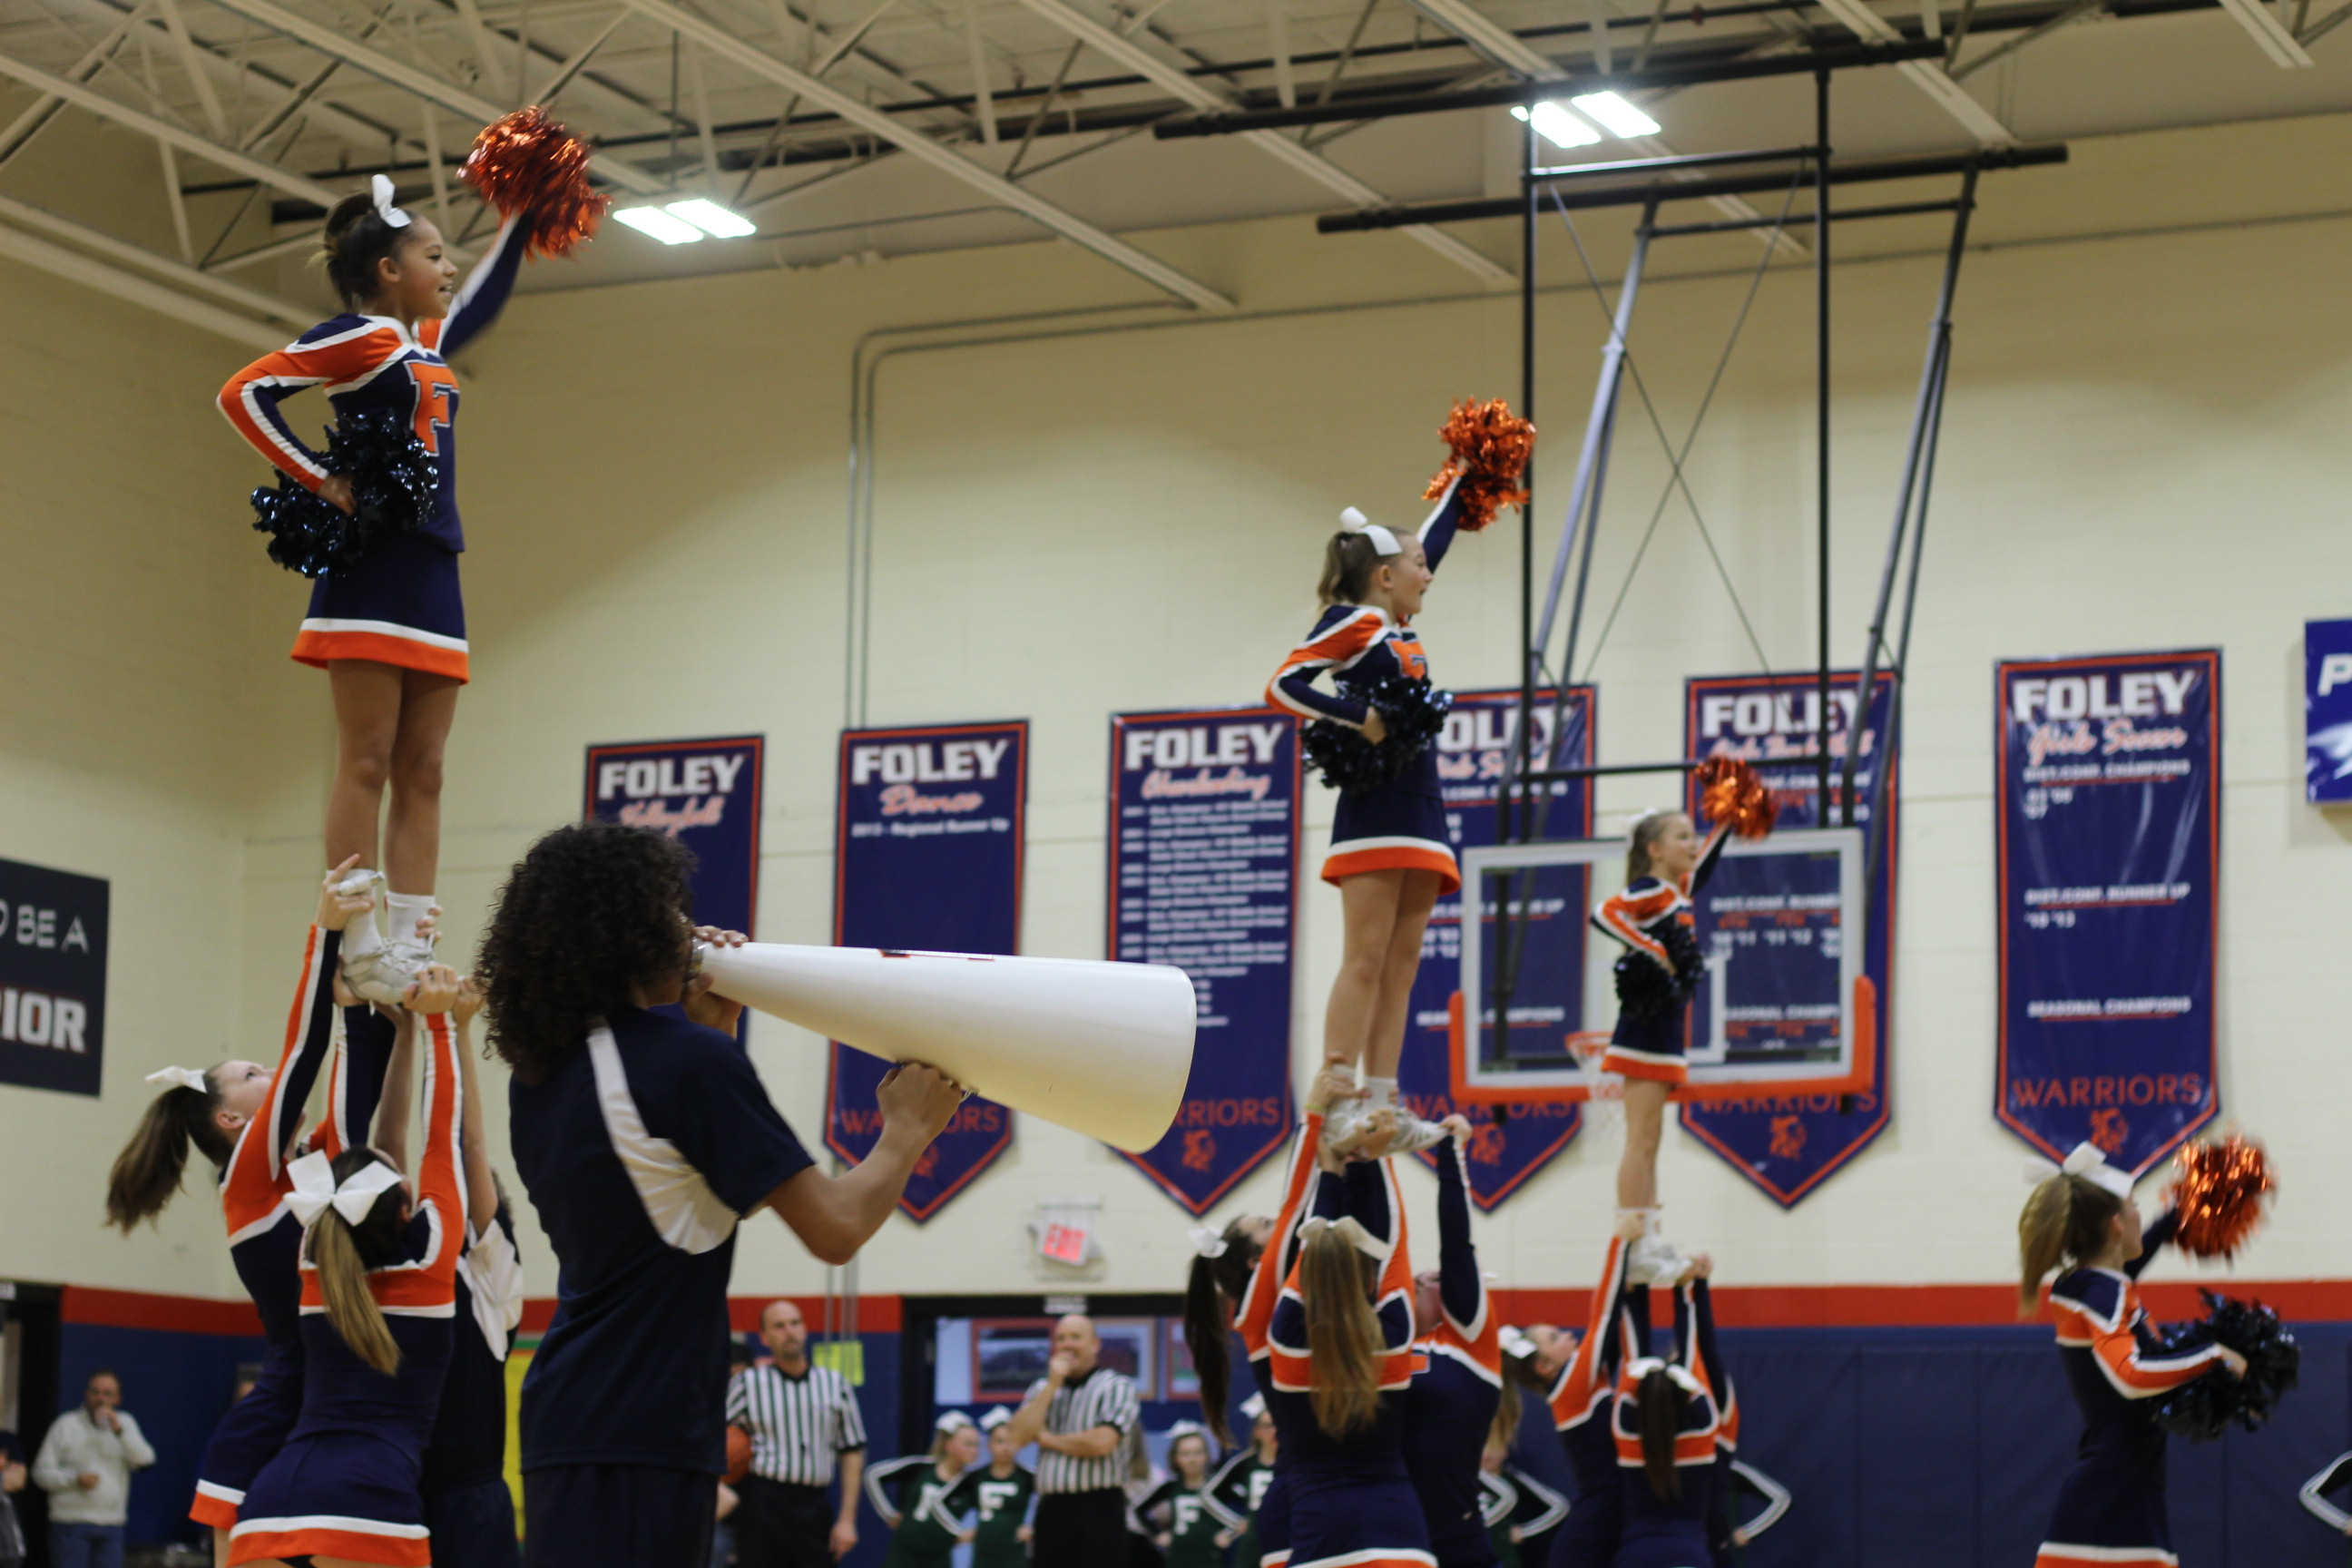 cheerleaders cheering at game